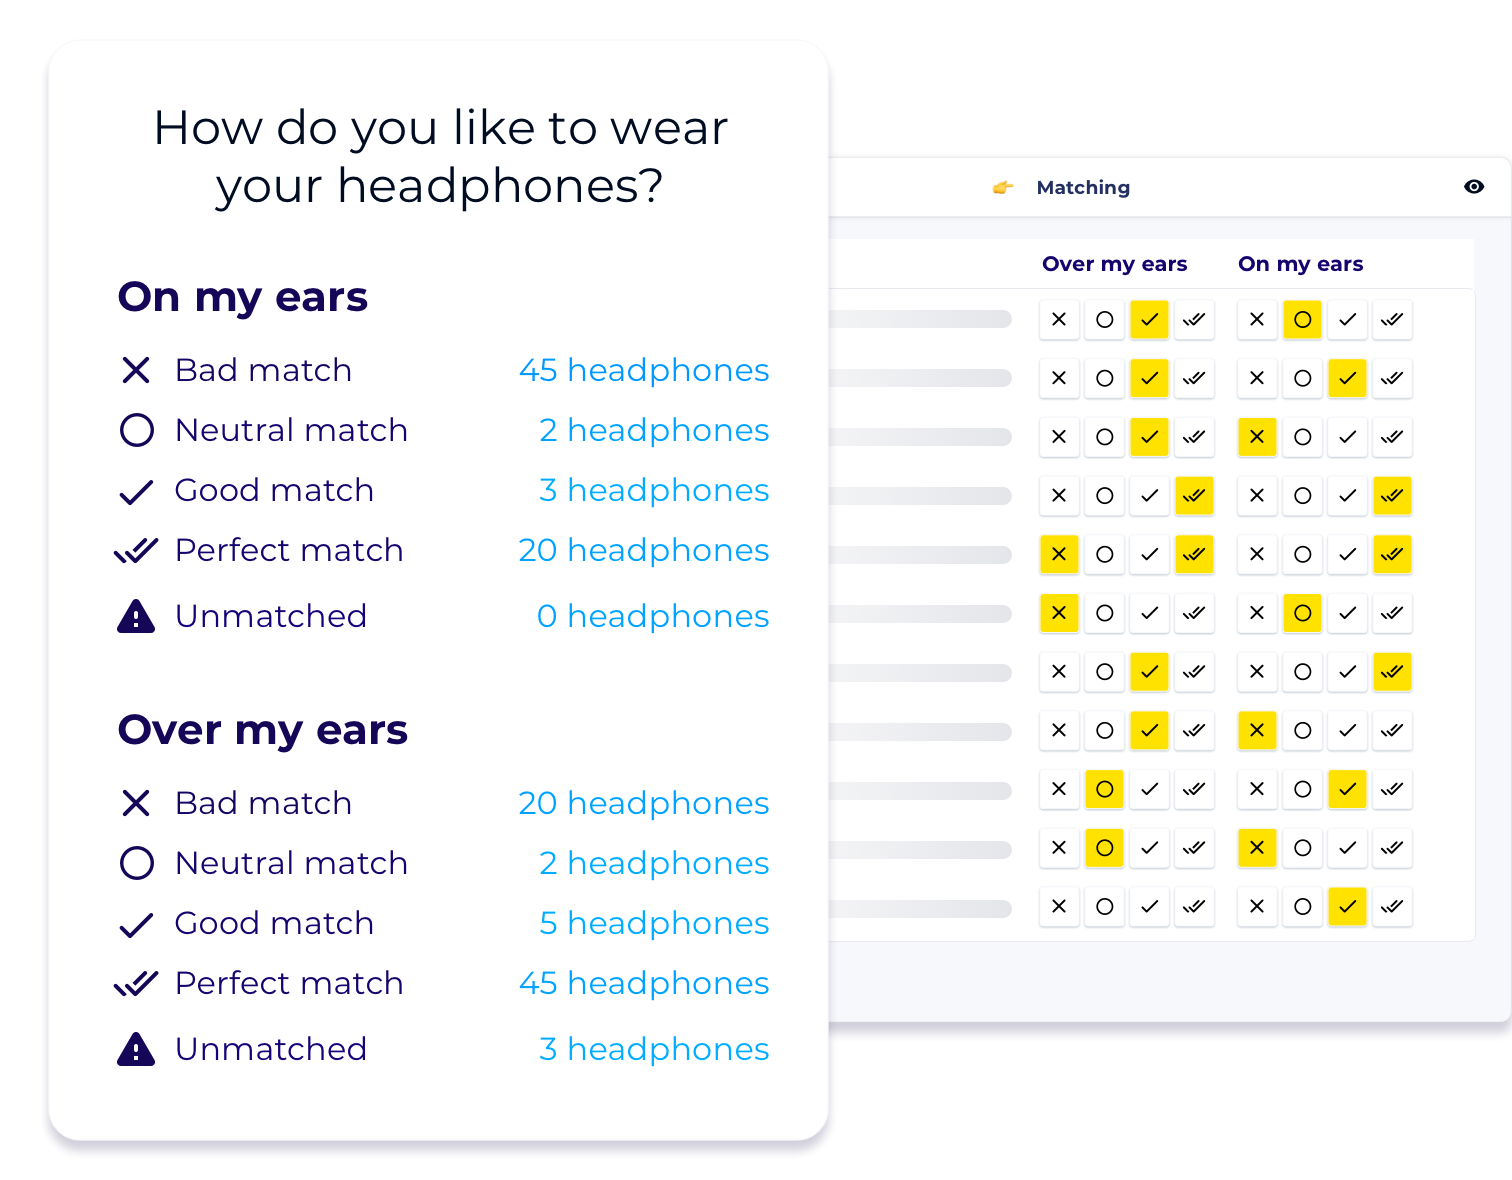 Define which products match your user's answers